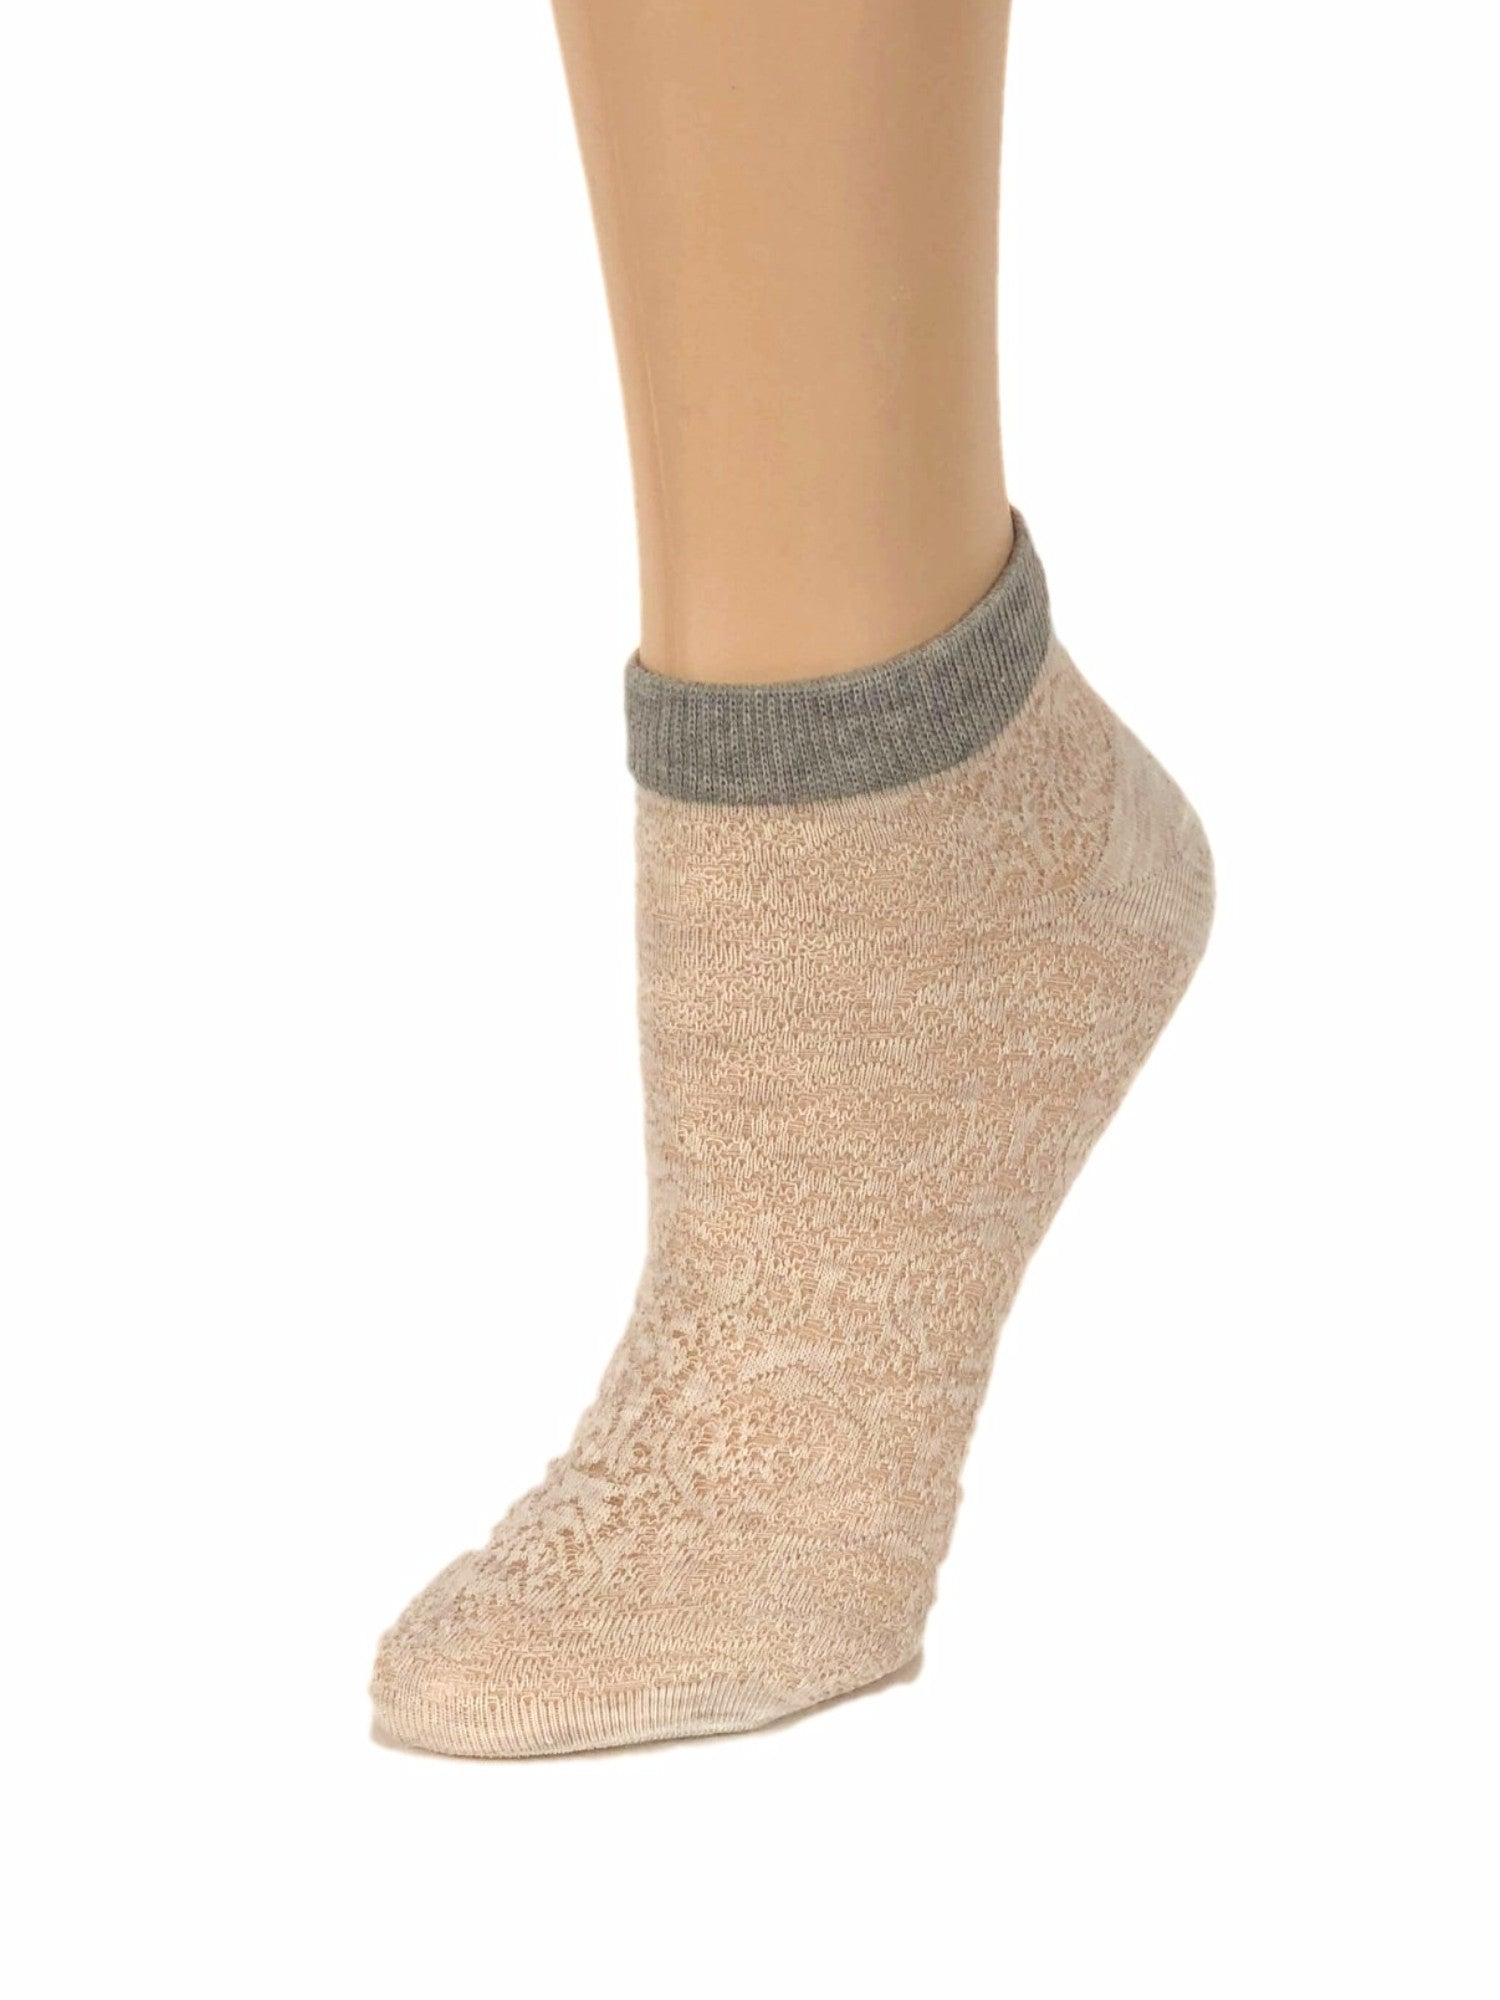 Grey-Stripped Cream Ankle Sheer Socks - Global Trendz Fashion®